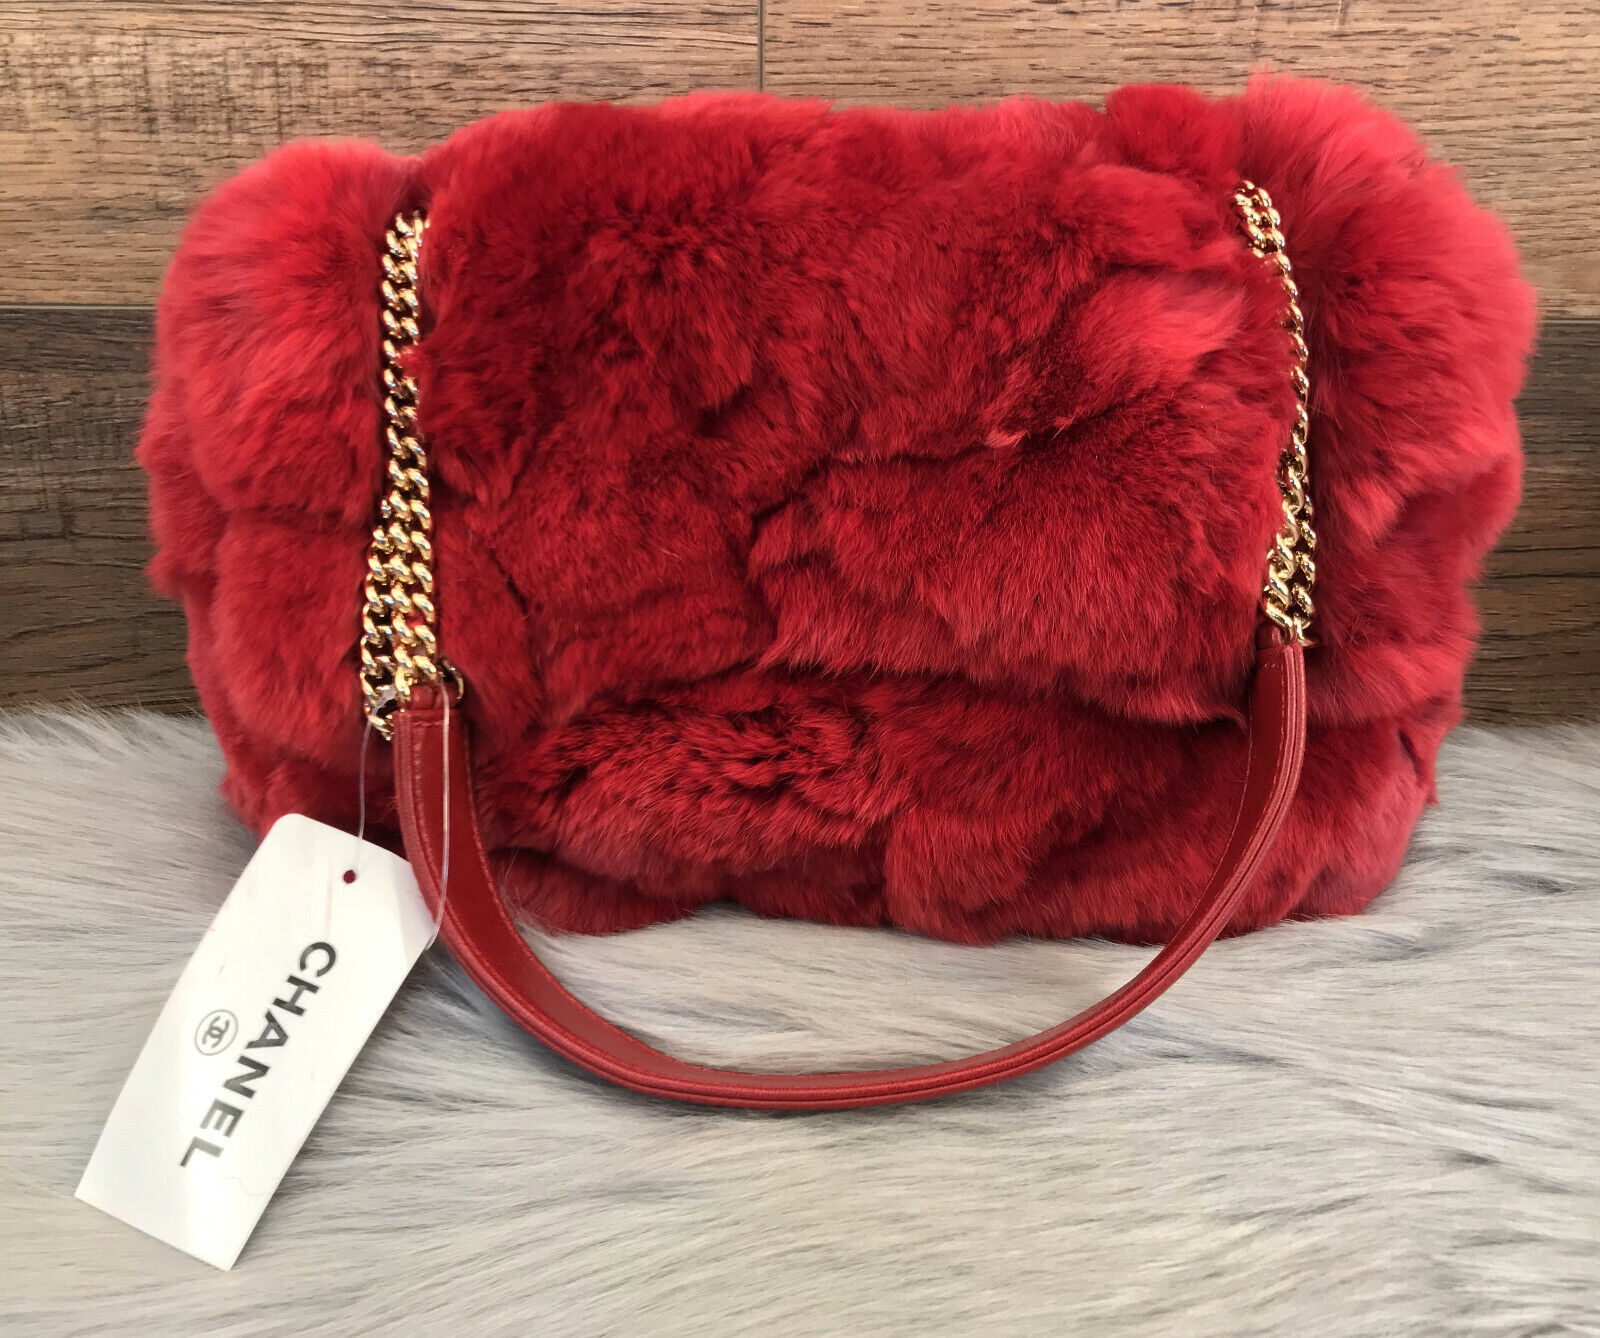 NWT Chanel Red Rabbit Fur Classic Limited Edition Shoulder Bag wCOA